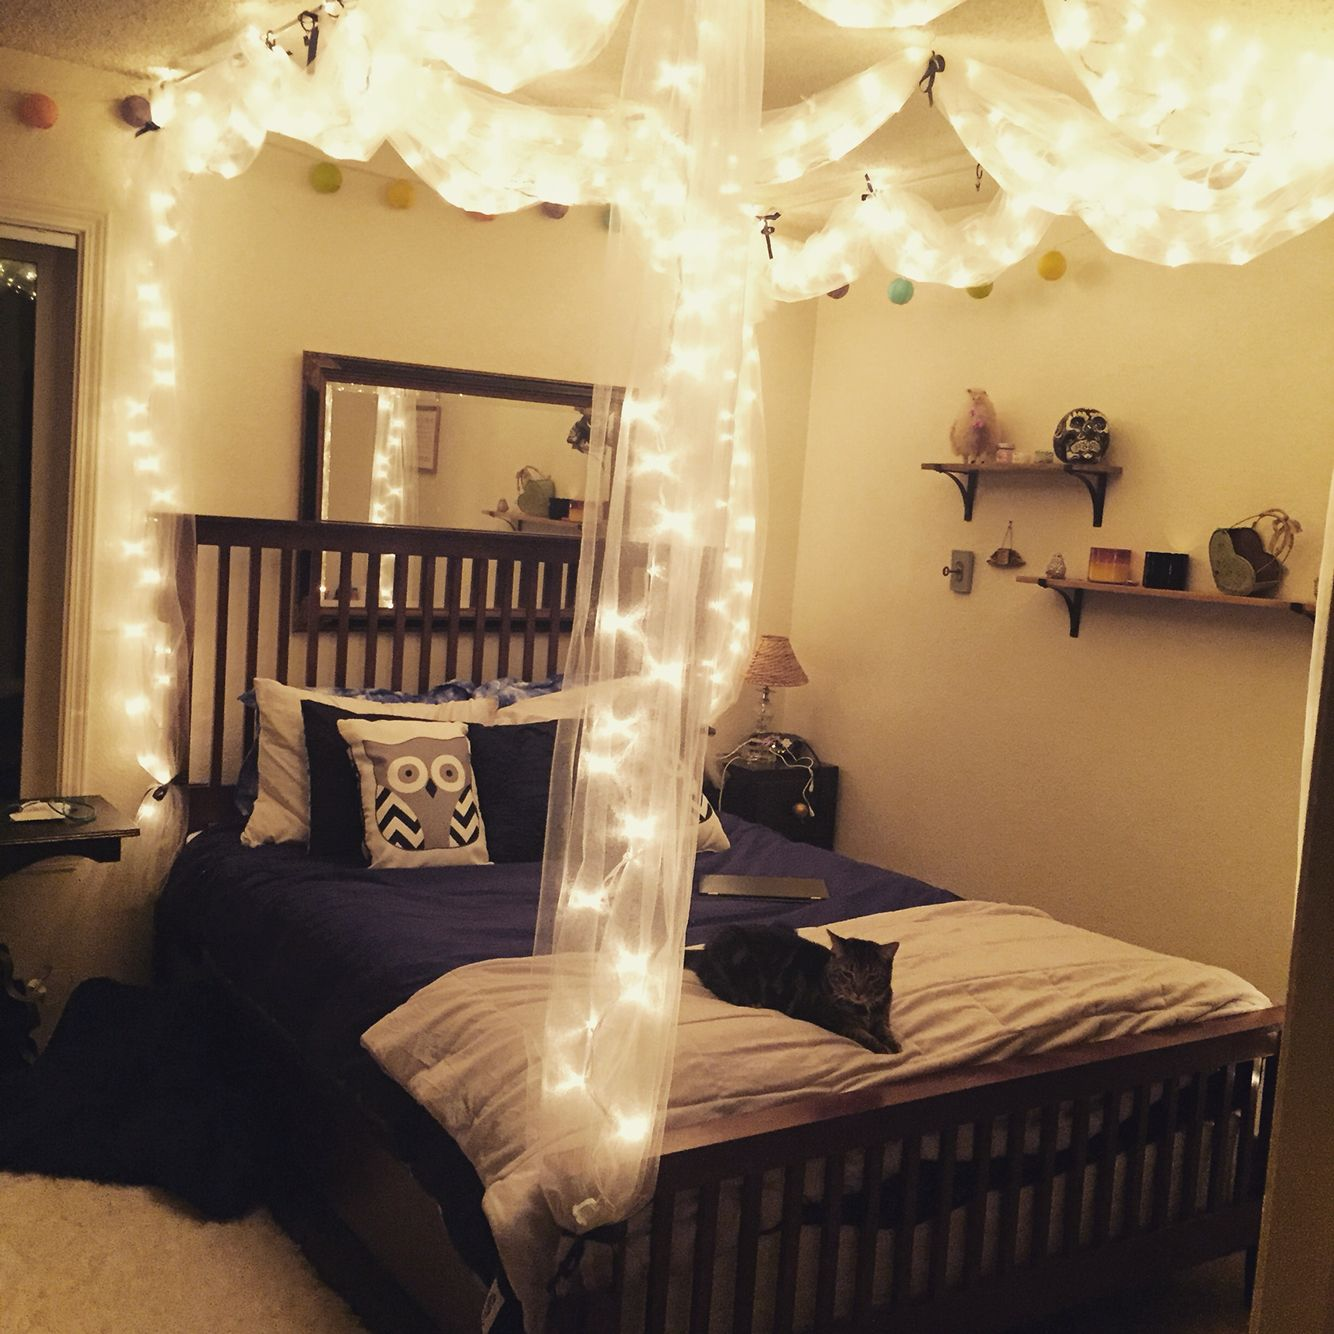 Little Girl Canopy Bed Ideas Diy Bed Canopy With Lights Diy Pinterest Canopy